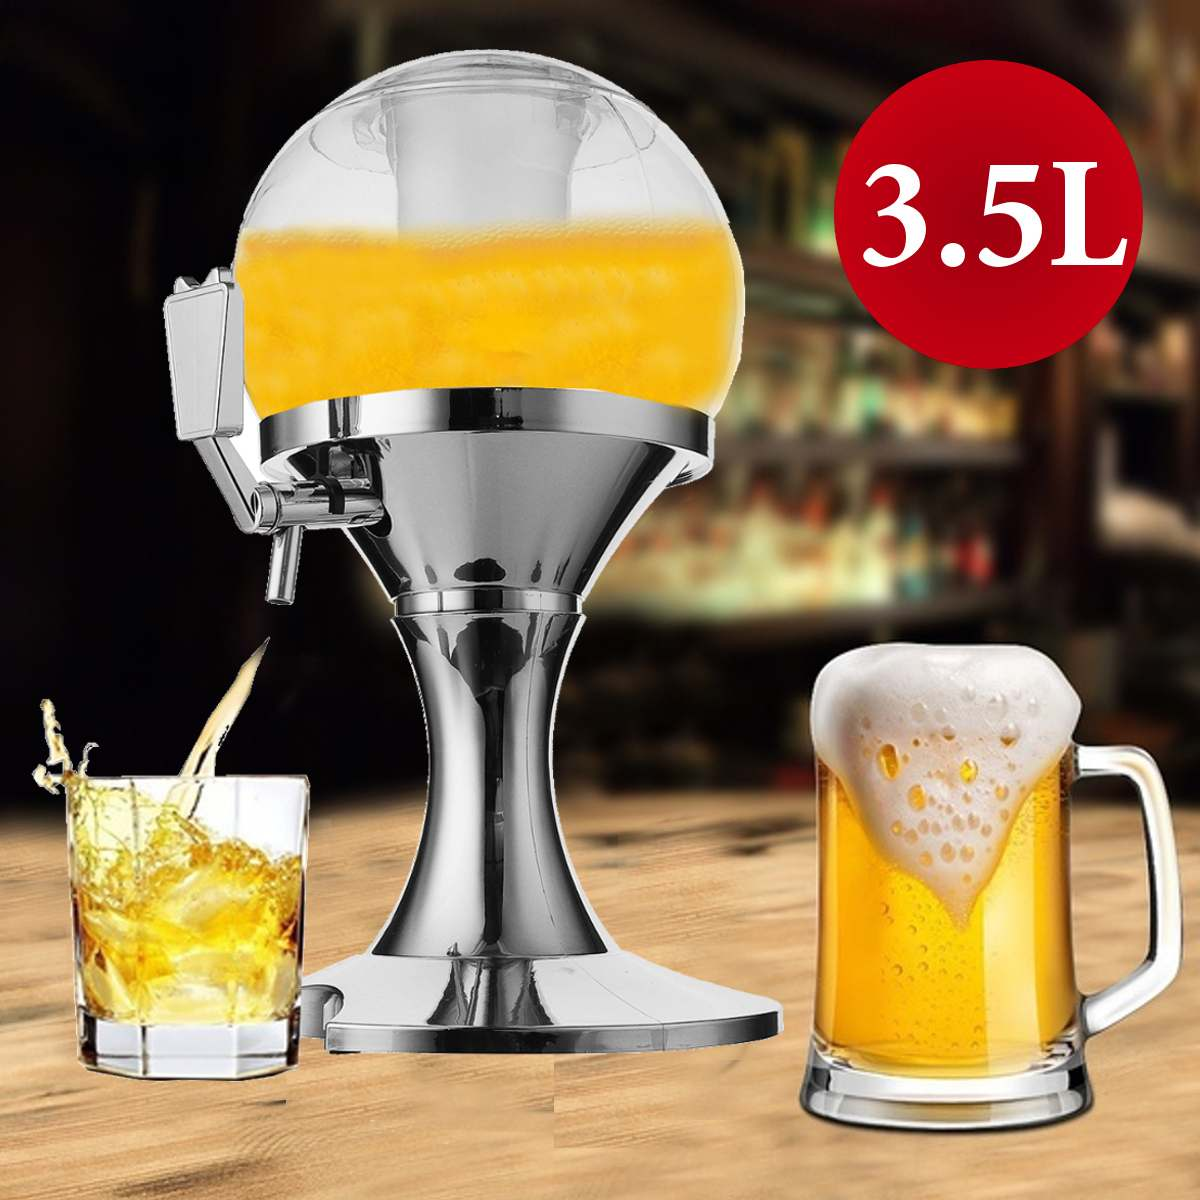 3.5L Tabletop Beer Tower With Ice Core Container